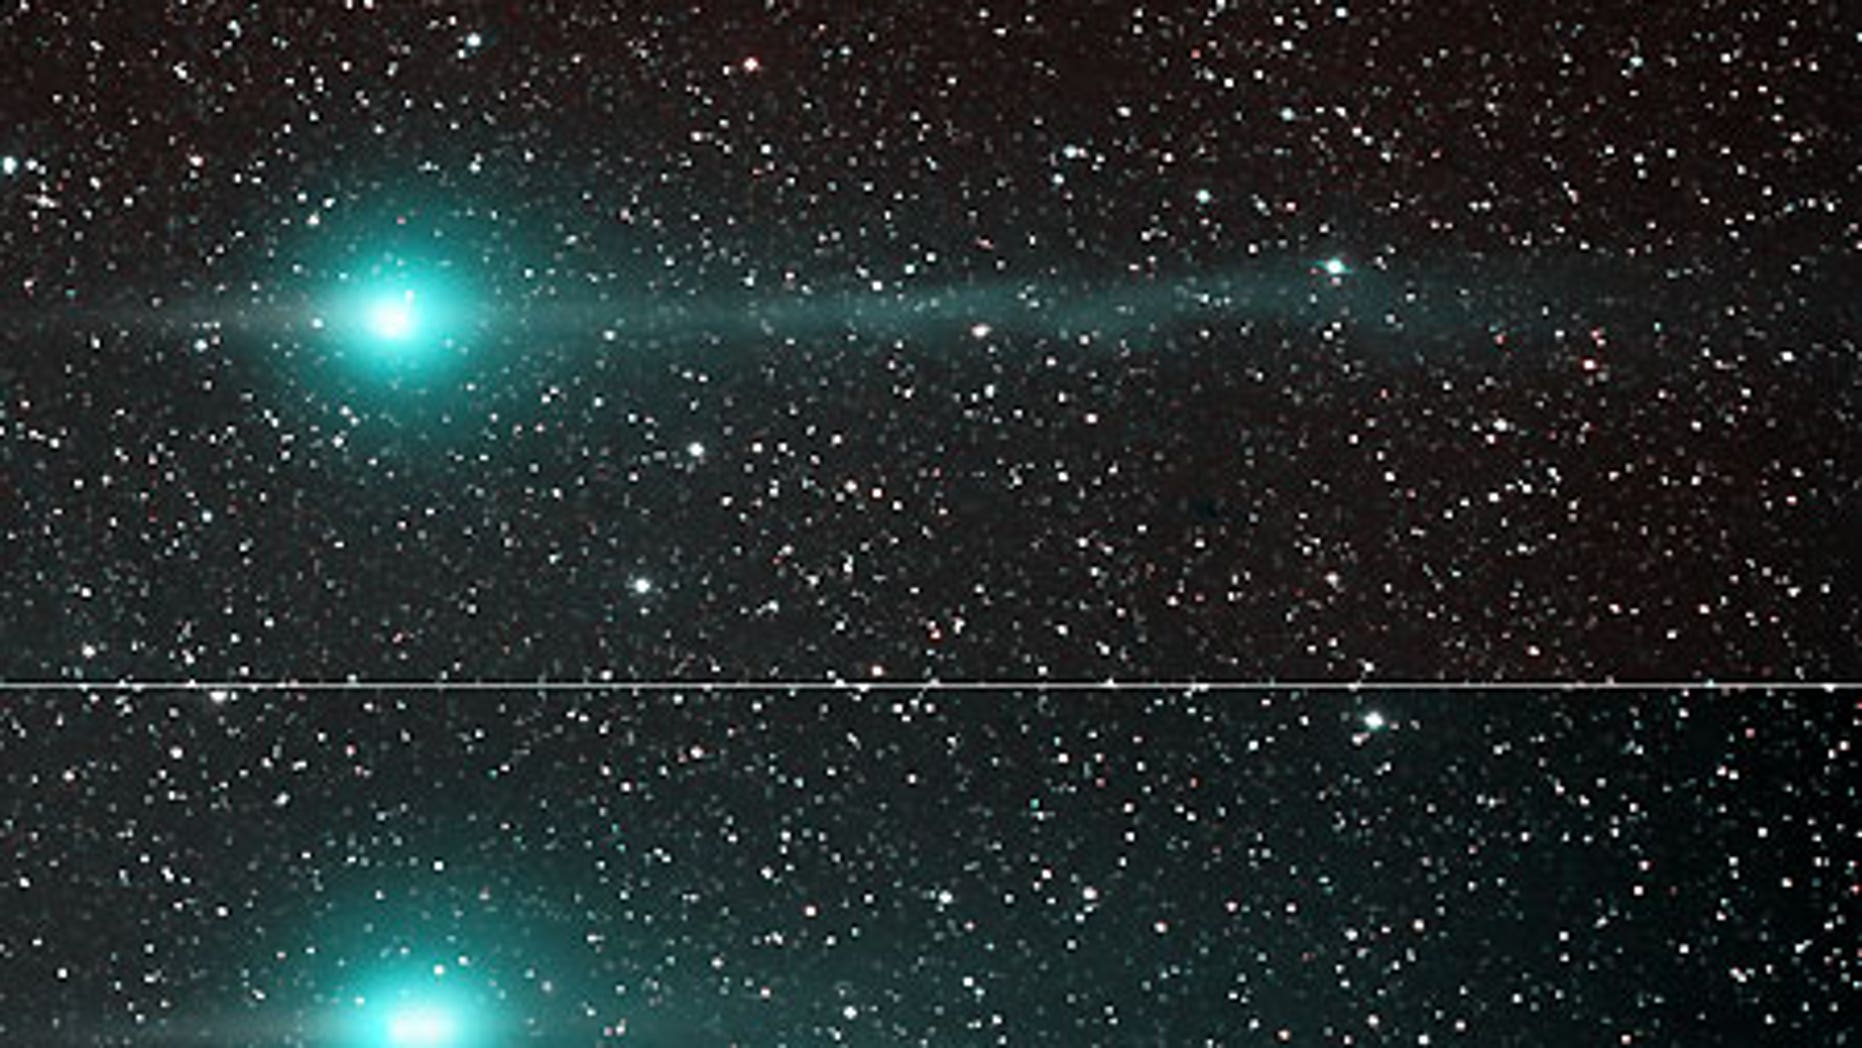 Jan. 31: Comet Lulin as spotted by a telescope in New Mexico.